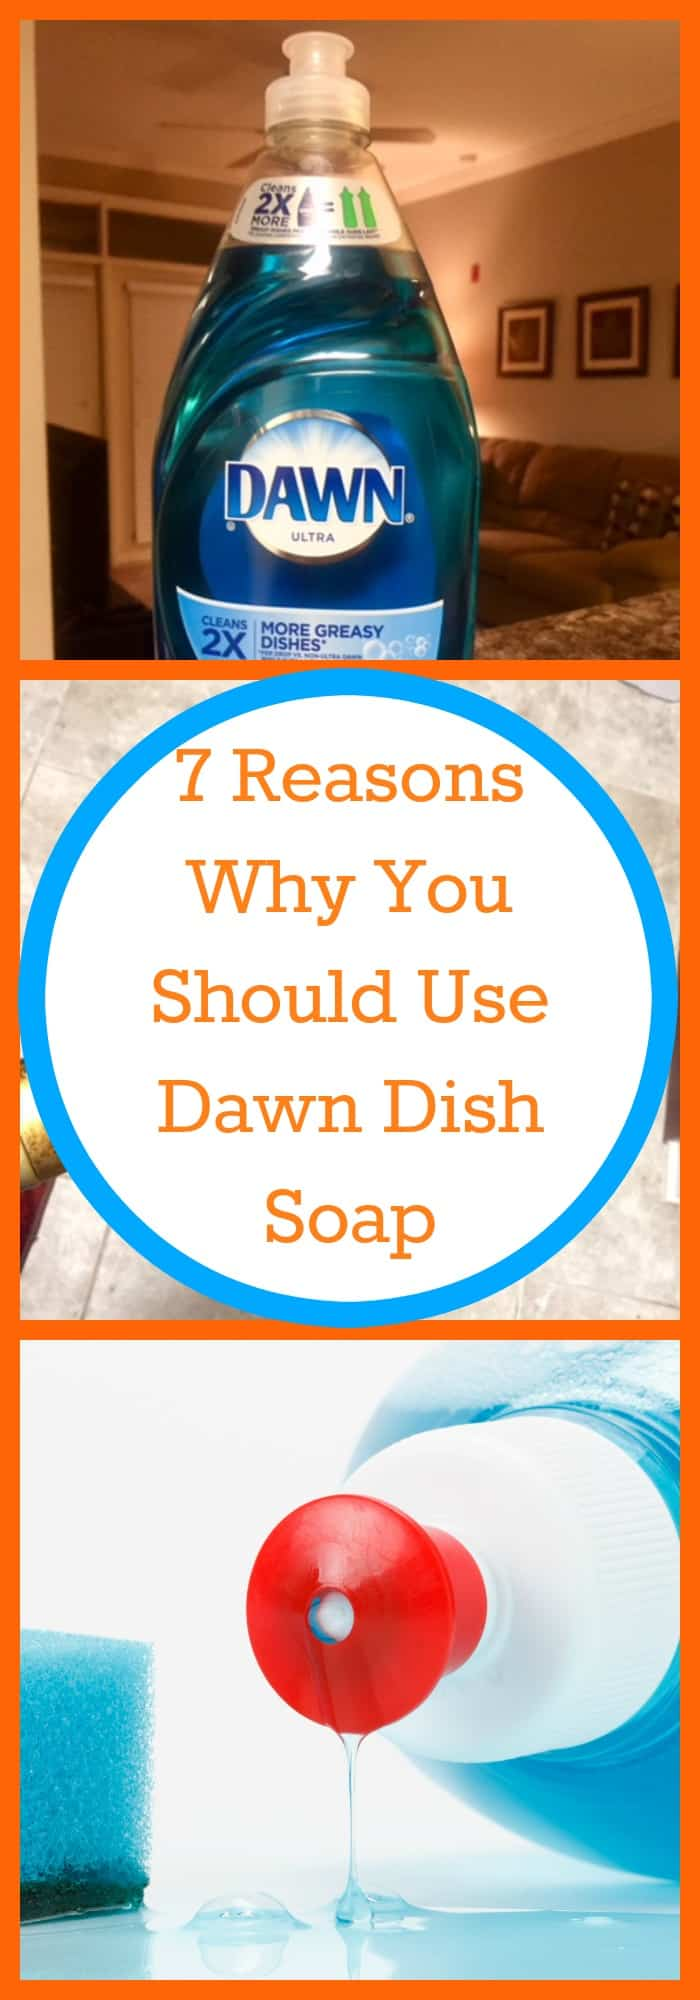 Cleaning-7 Reasons Why You Should Use Dawn Dish Soap--The Organized Mom